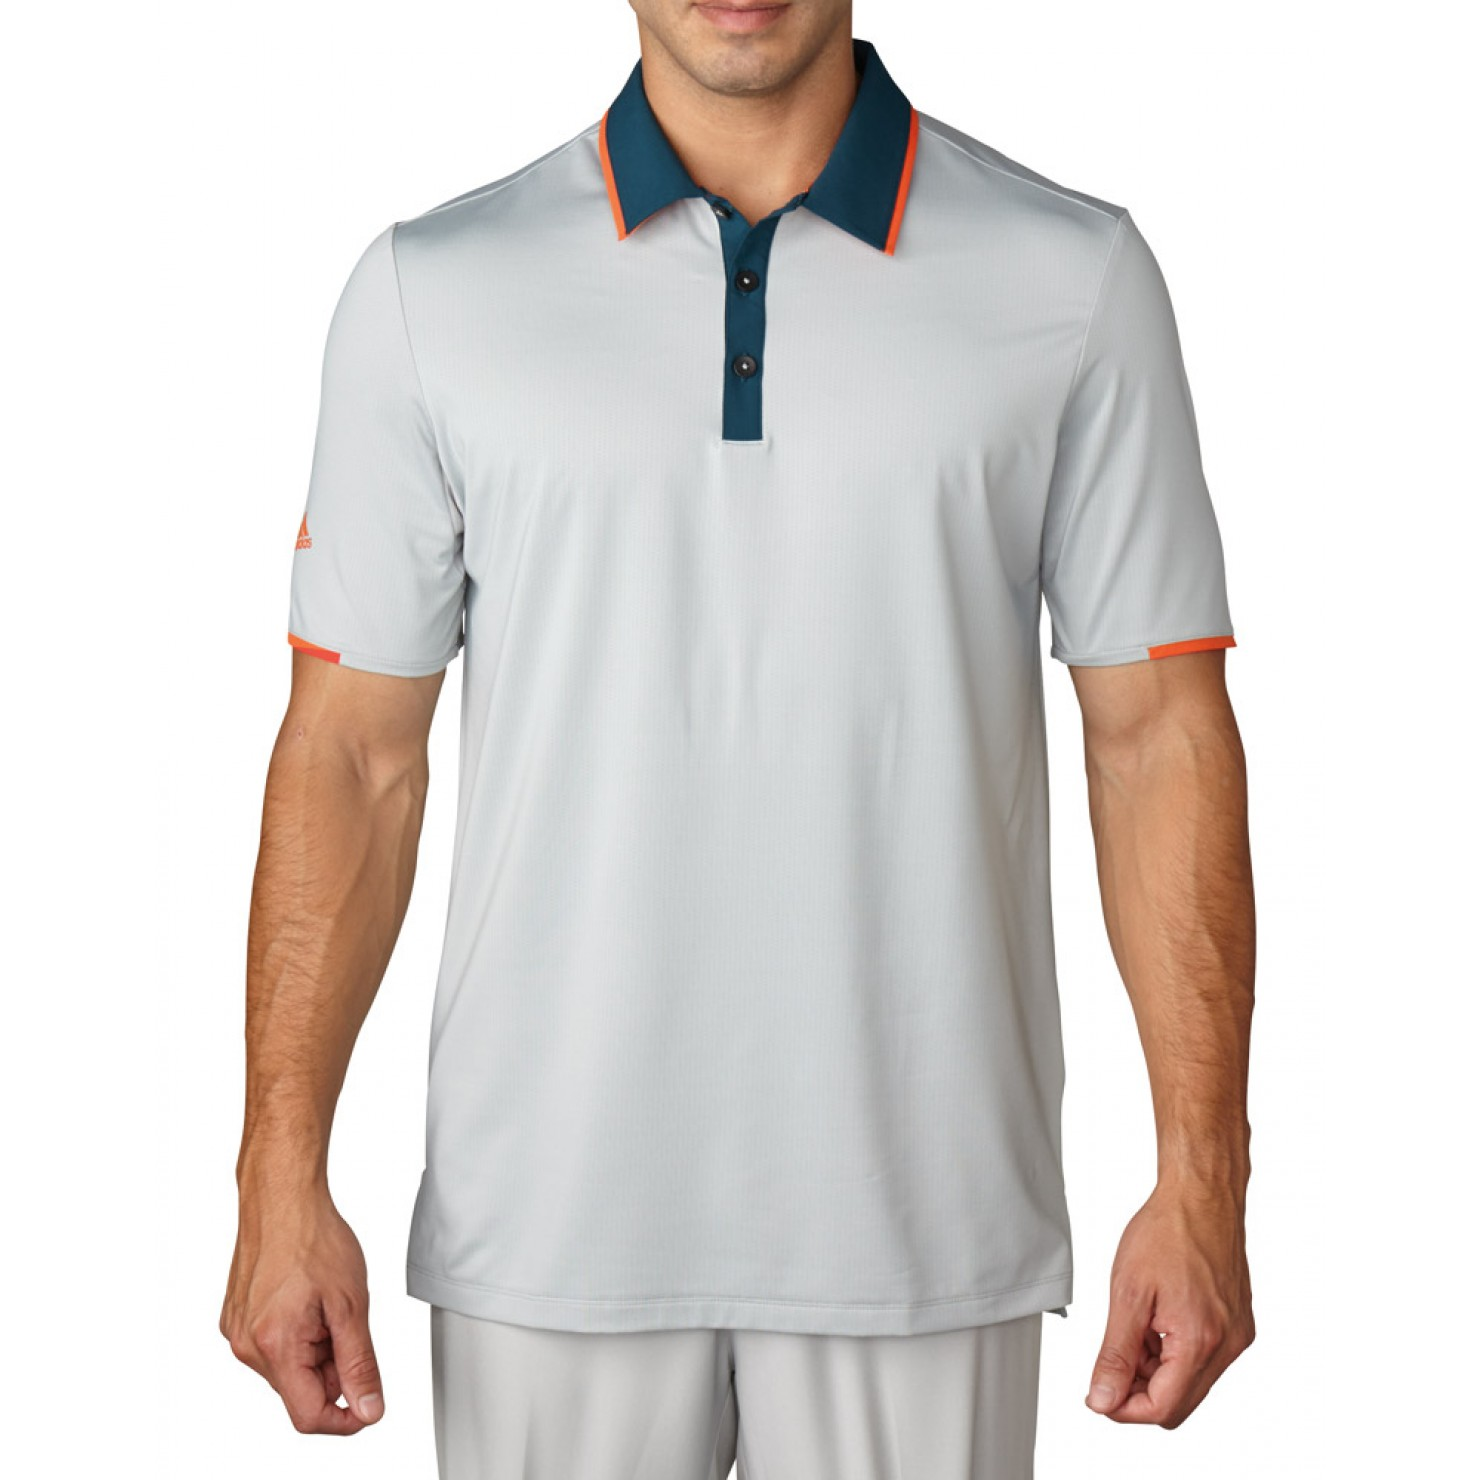 Adidas Golf ClimaCool Tipped Performance Polo - Closeout